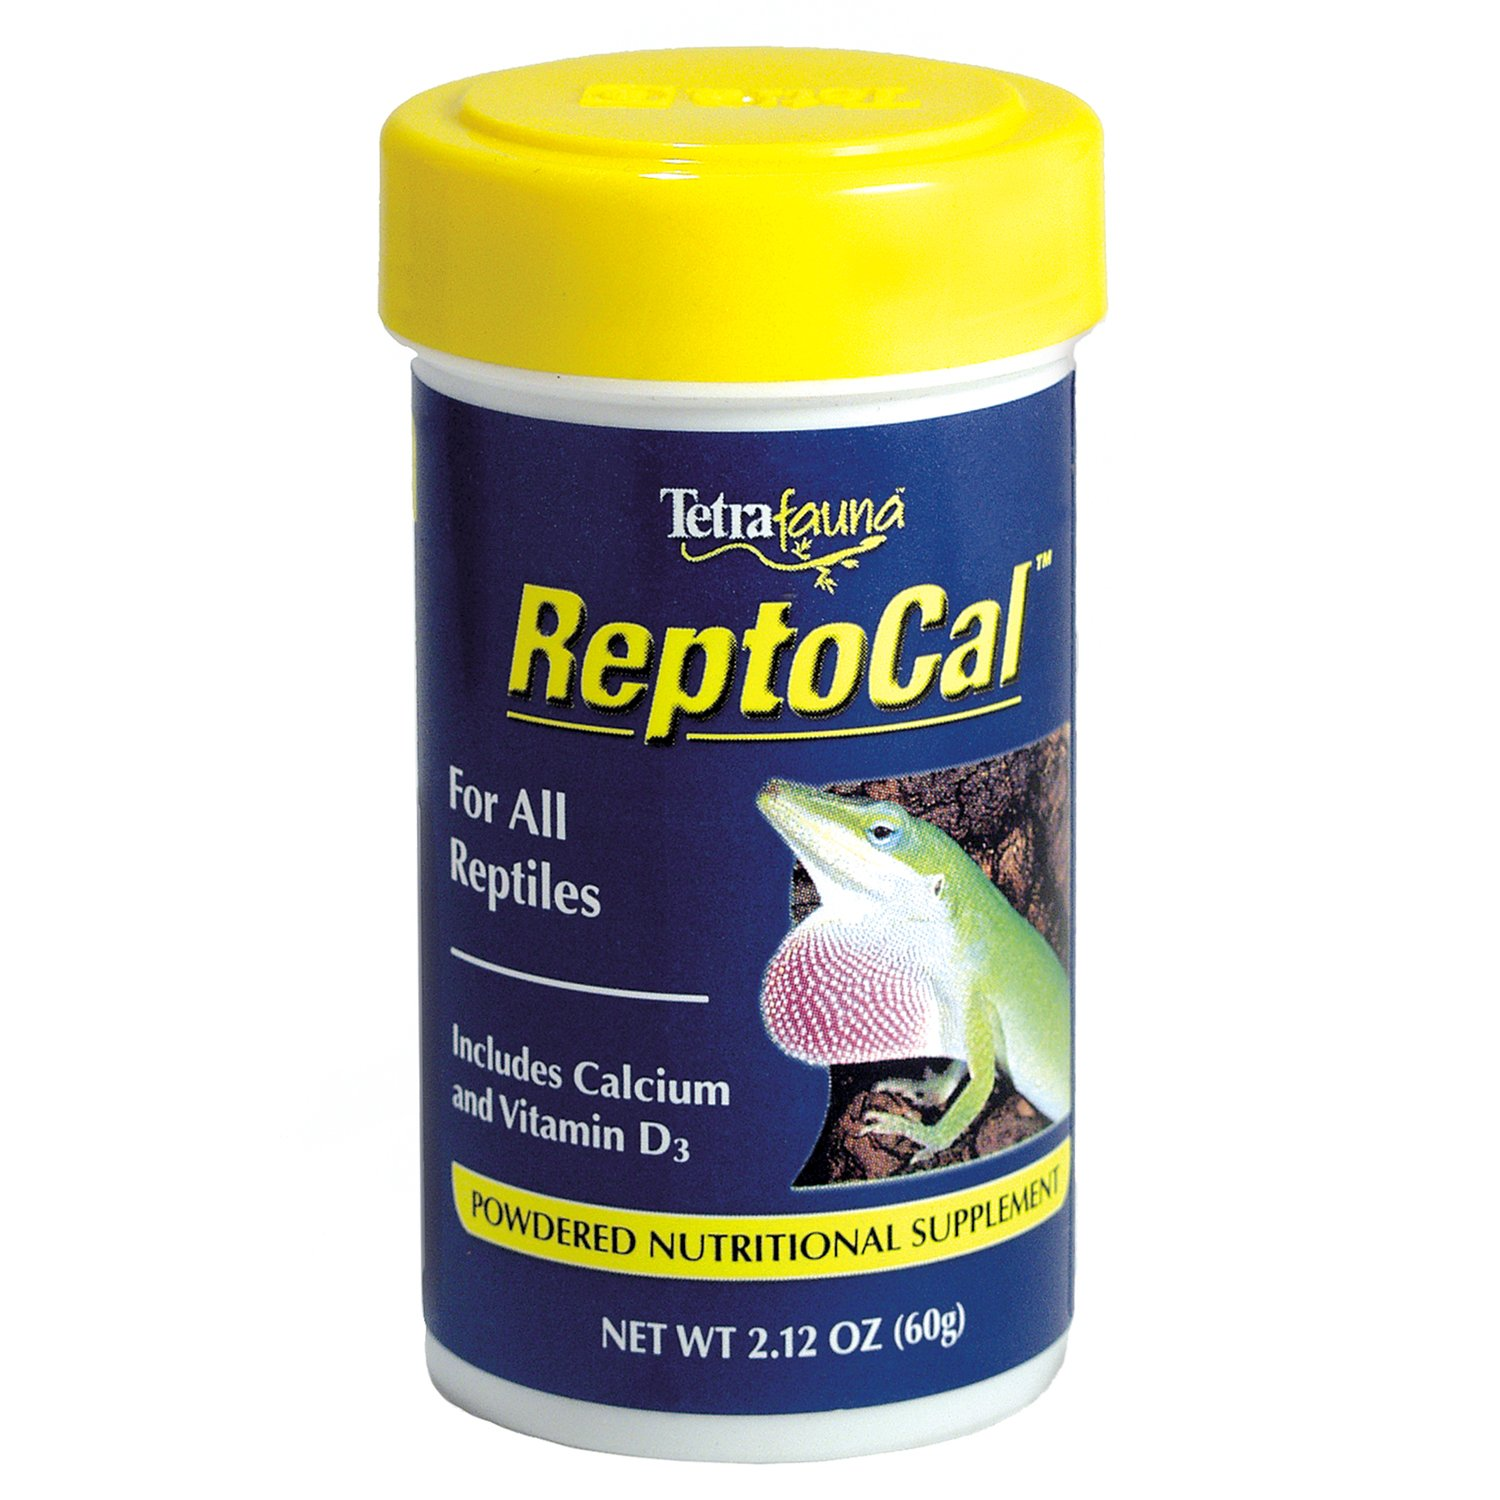 Tetra TetraFauna Reptocal Reptile Supplement 2.12-Ounce 100-Ml 16953